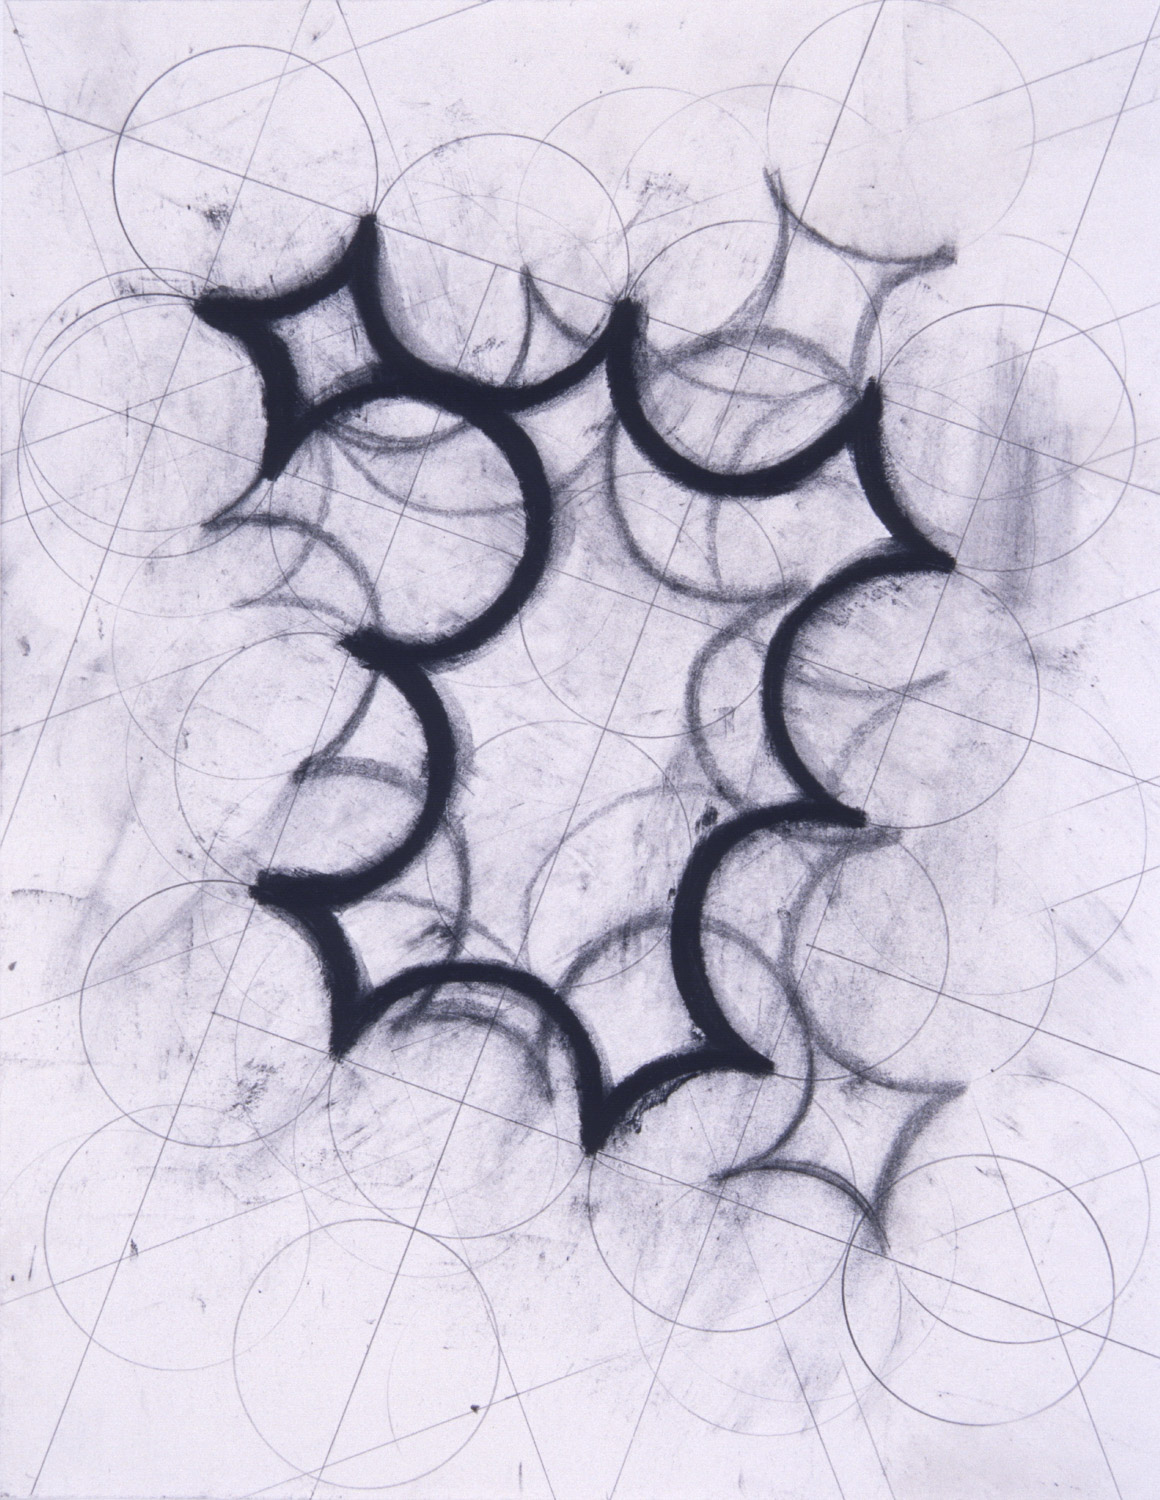 """9/20 #1, 2000, 11x14"""", charcoal & wax on paper"""